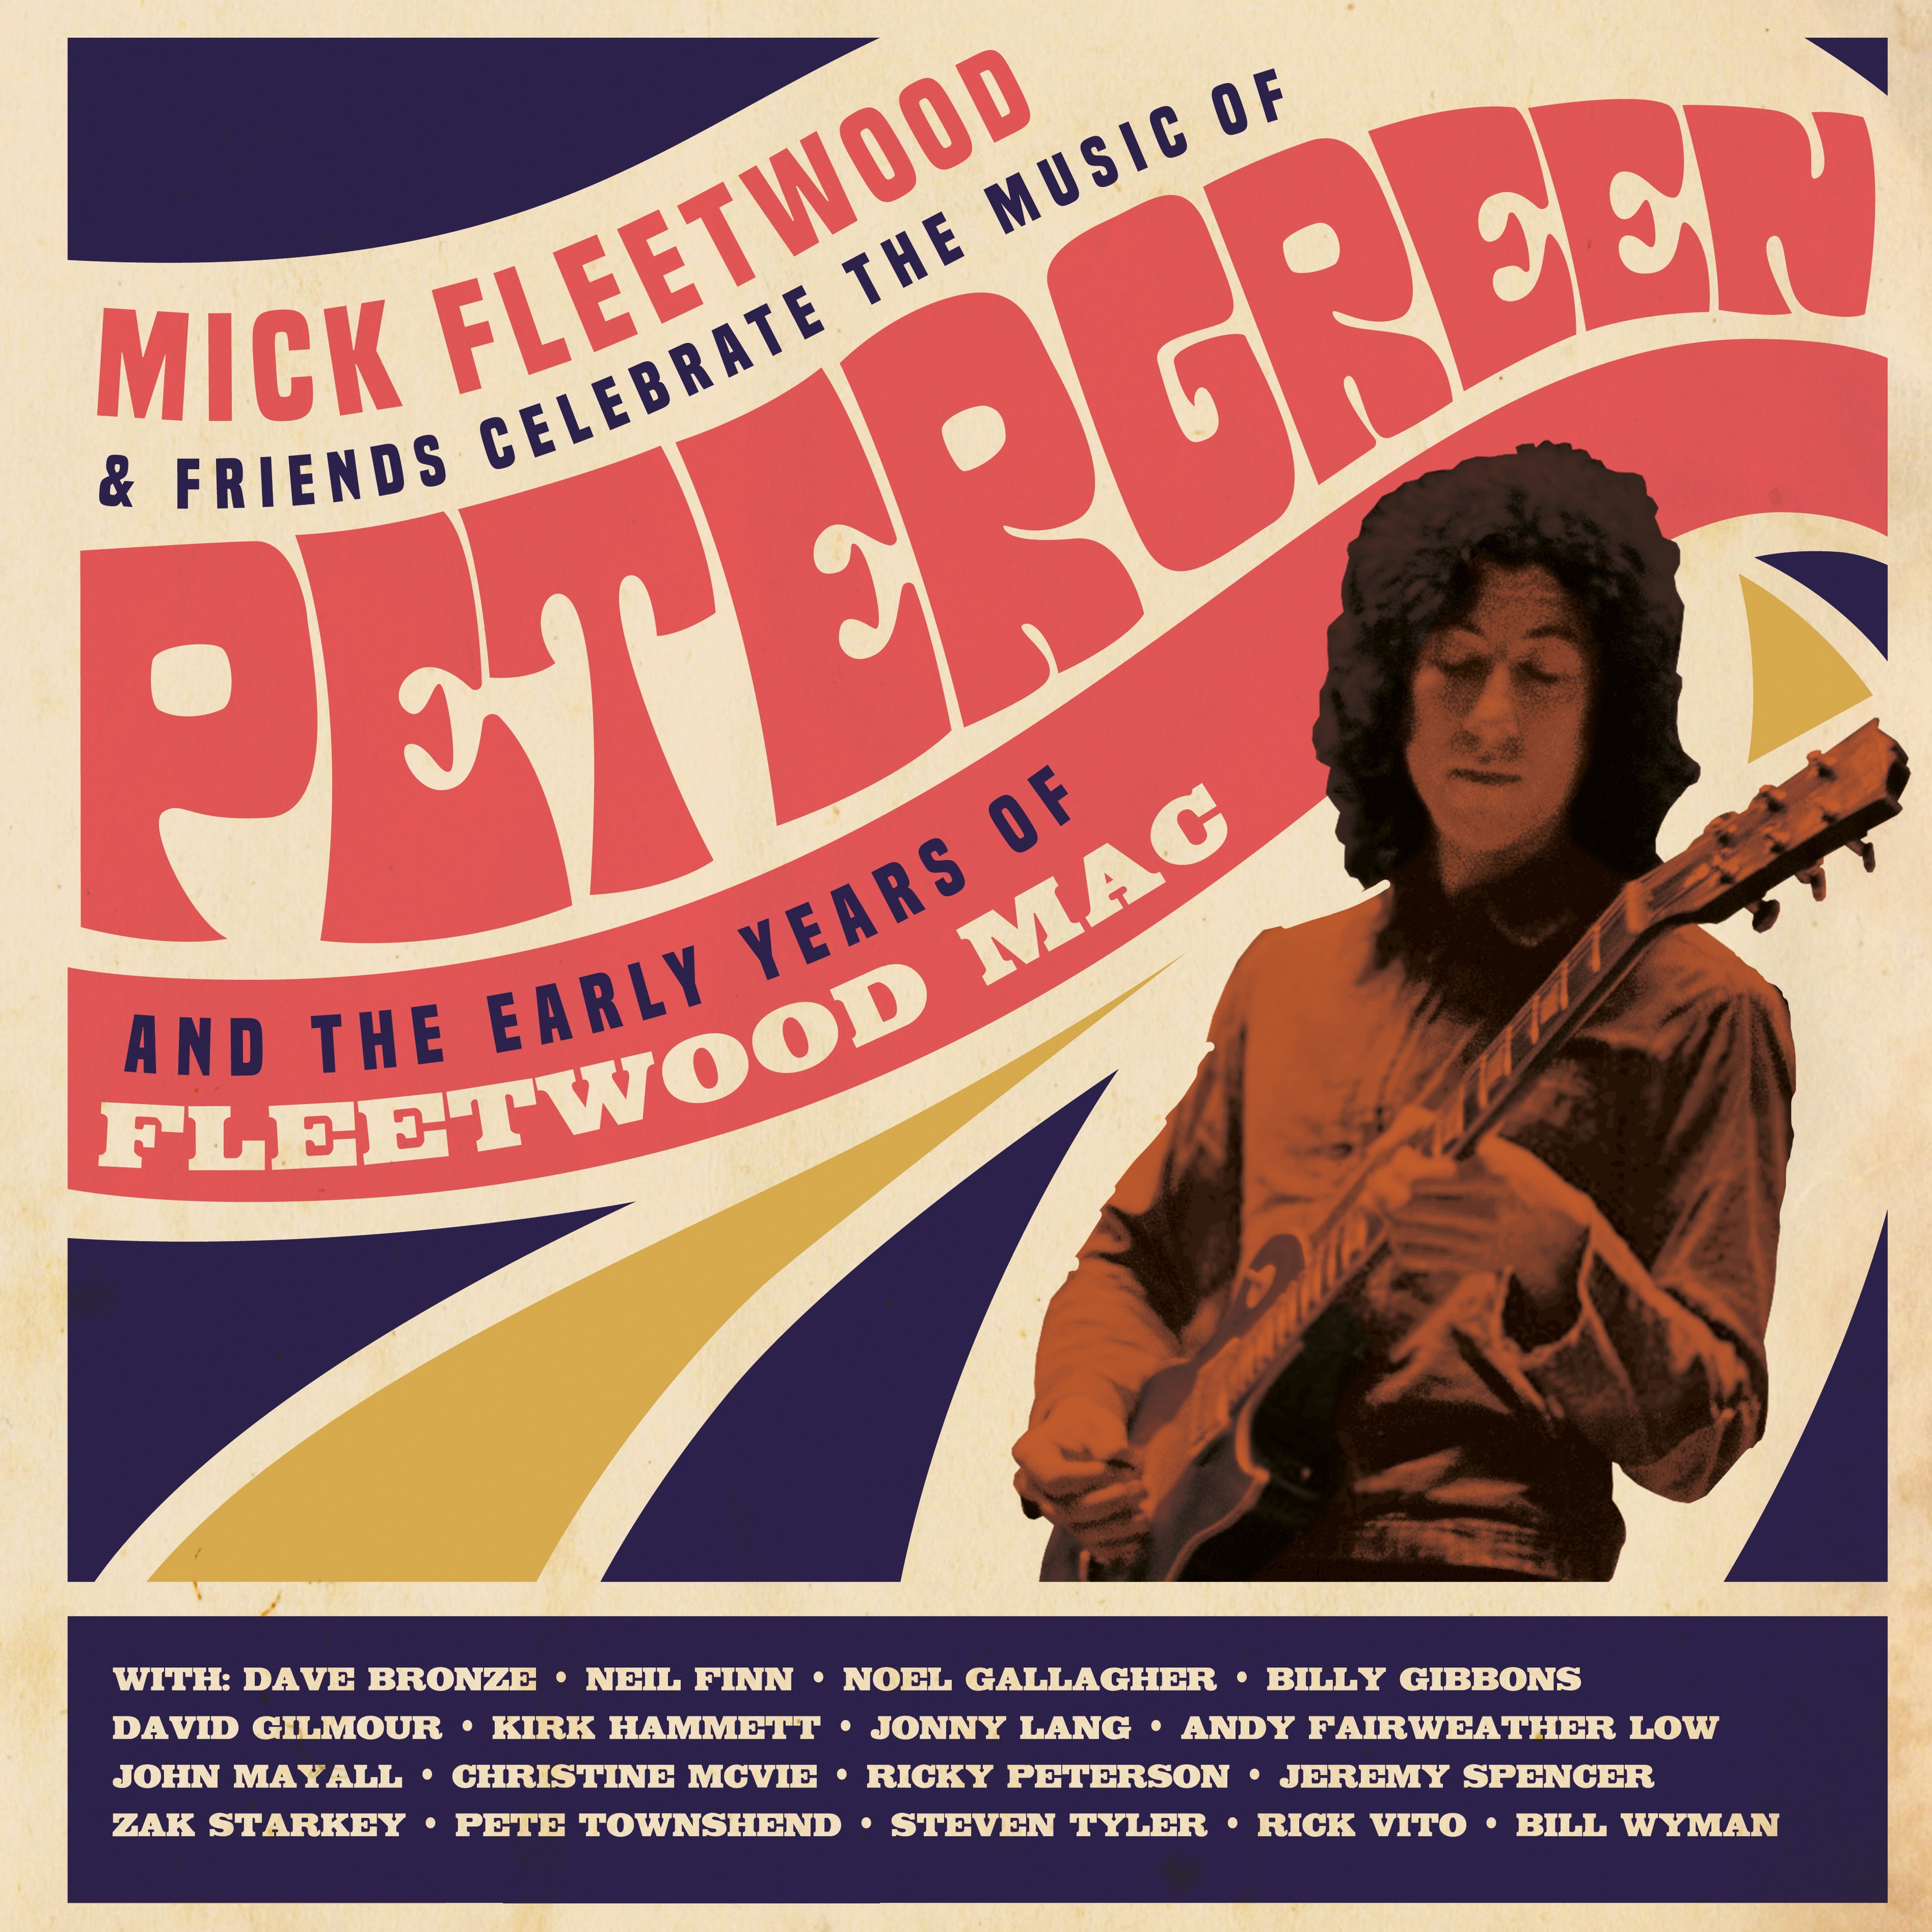 ALL-STAR CAST WITH A ONE OF A KIND CONCERT - HONORING THE EARLY YEARS OF FLEETWOOD MAC AND FOUNDER PETER GREEN